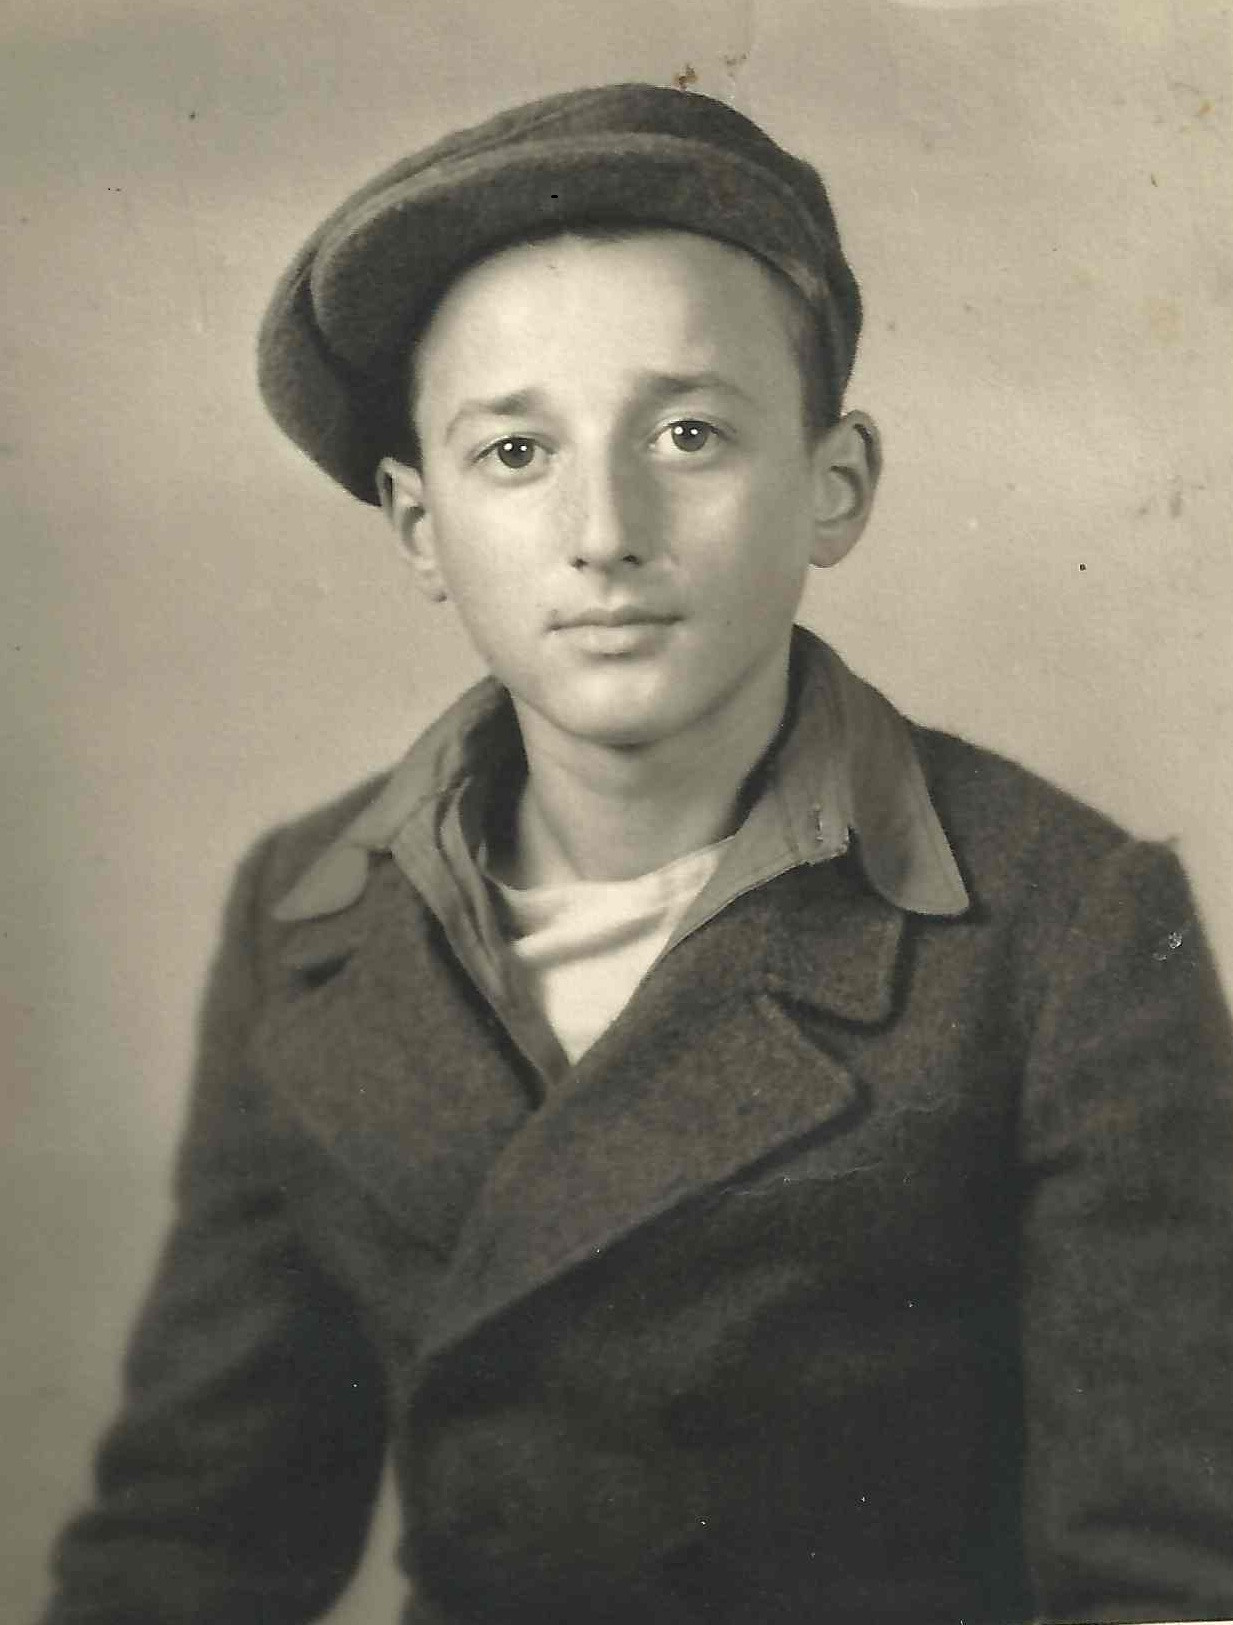 Ivor Perl aged 14, two years after being sent to the camp